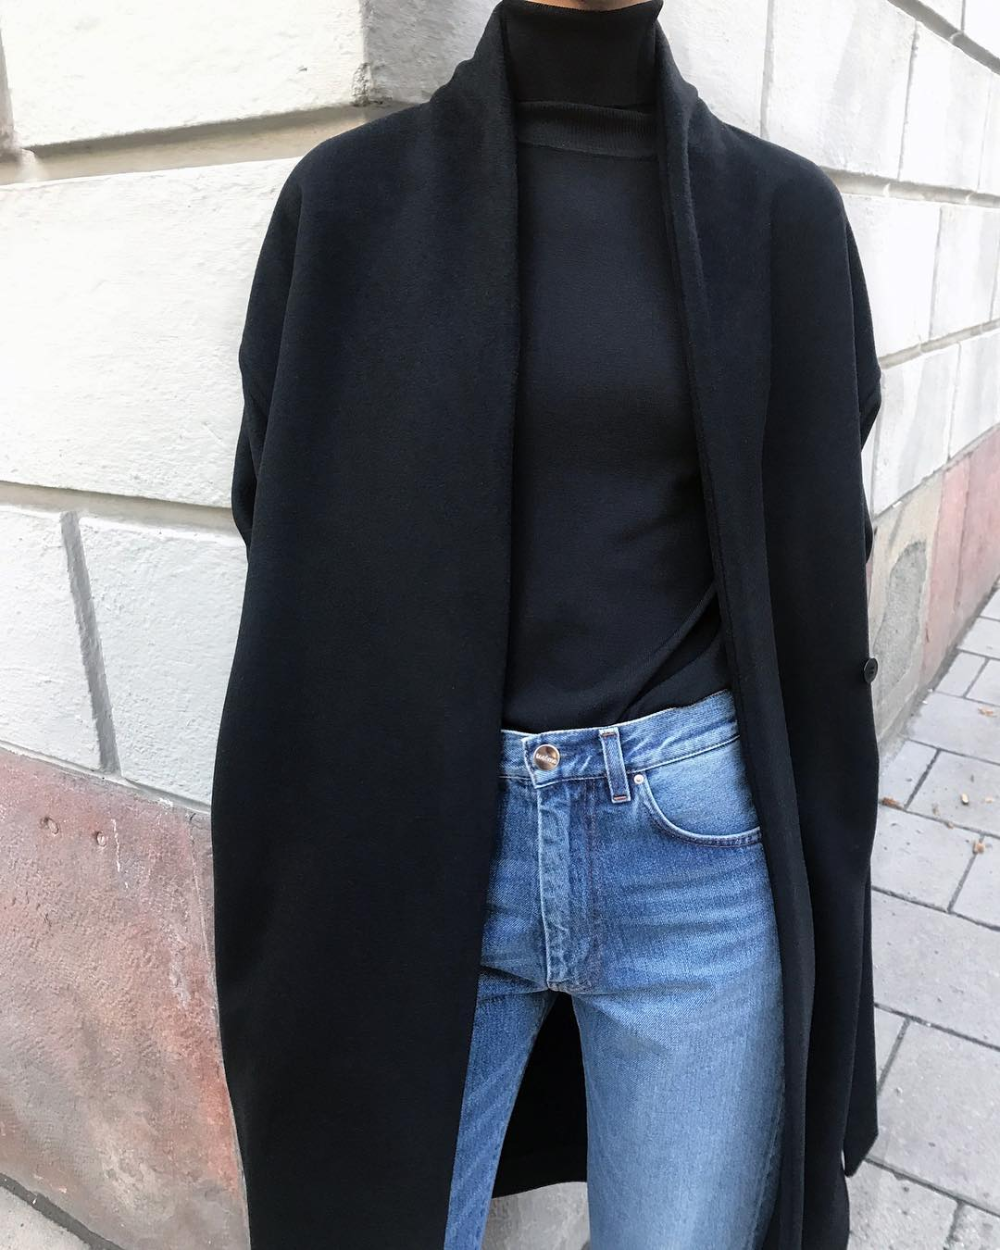 Le Fashion: The Minimalist Outfit We Want to Live In for Fall #lefashion